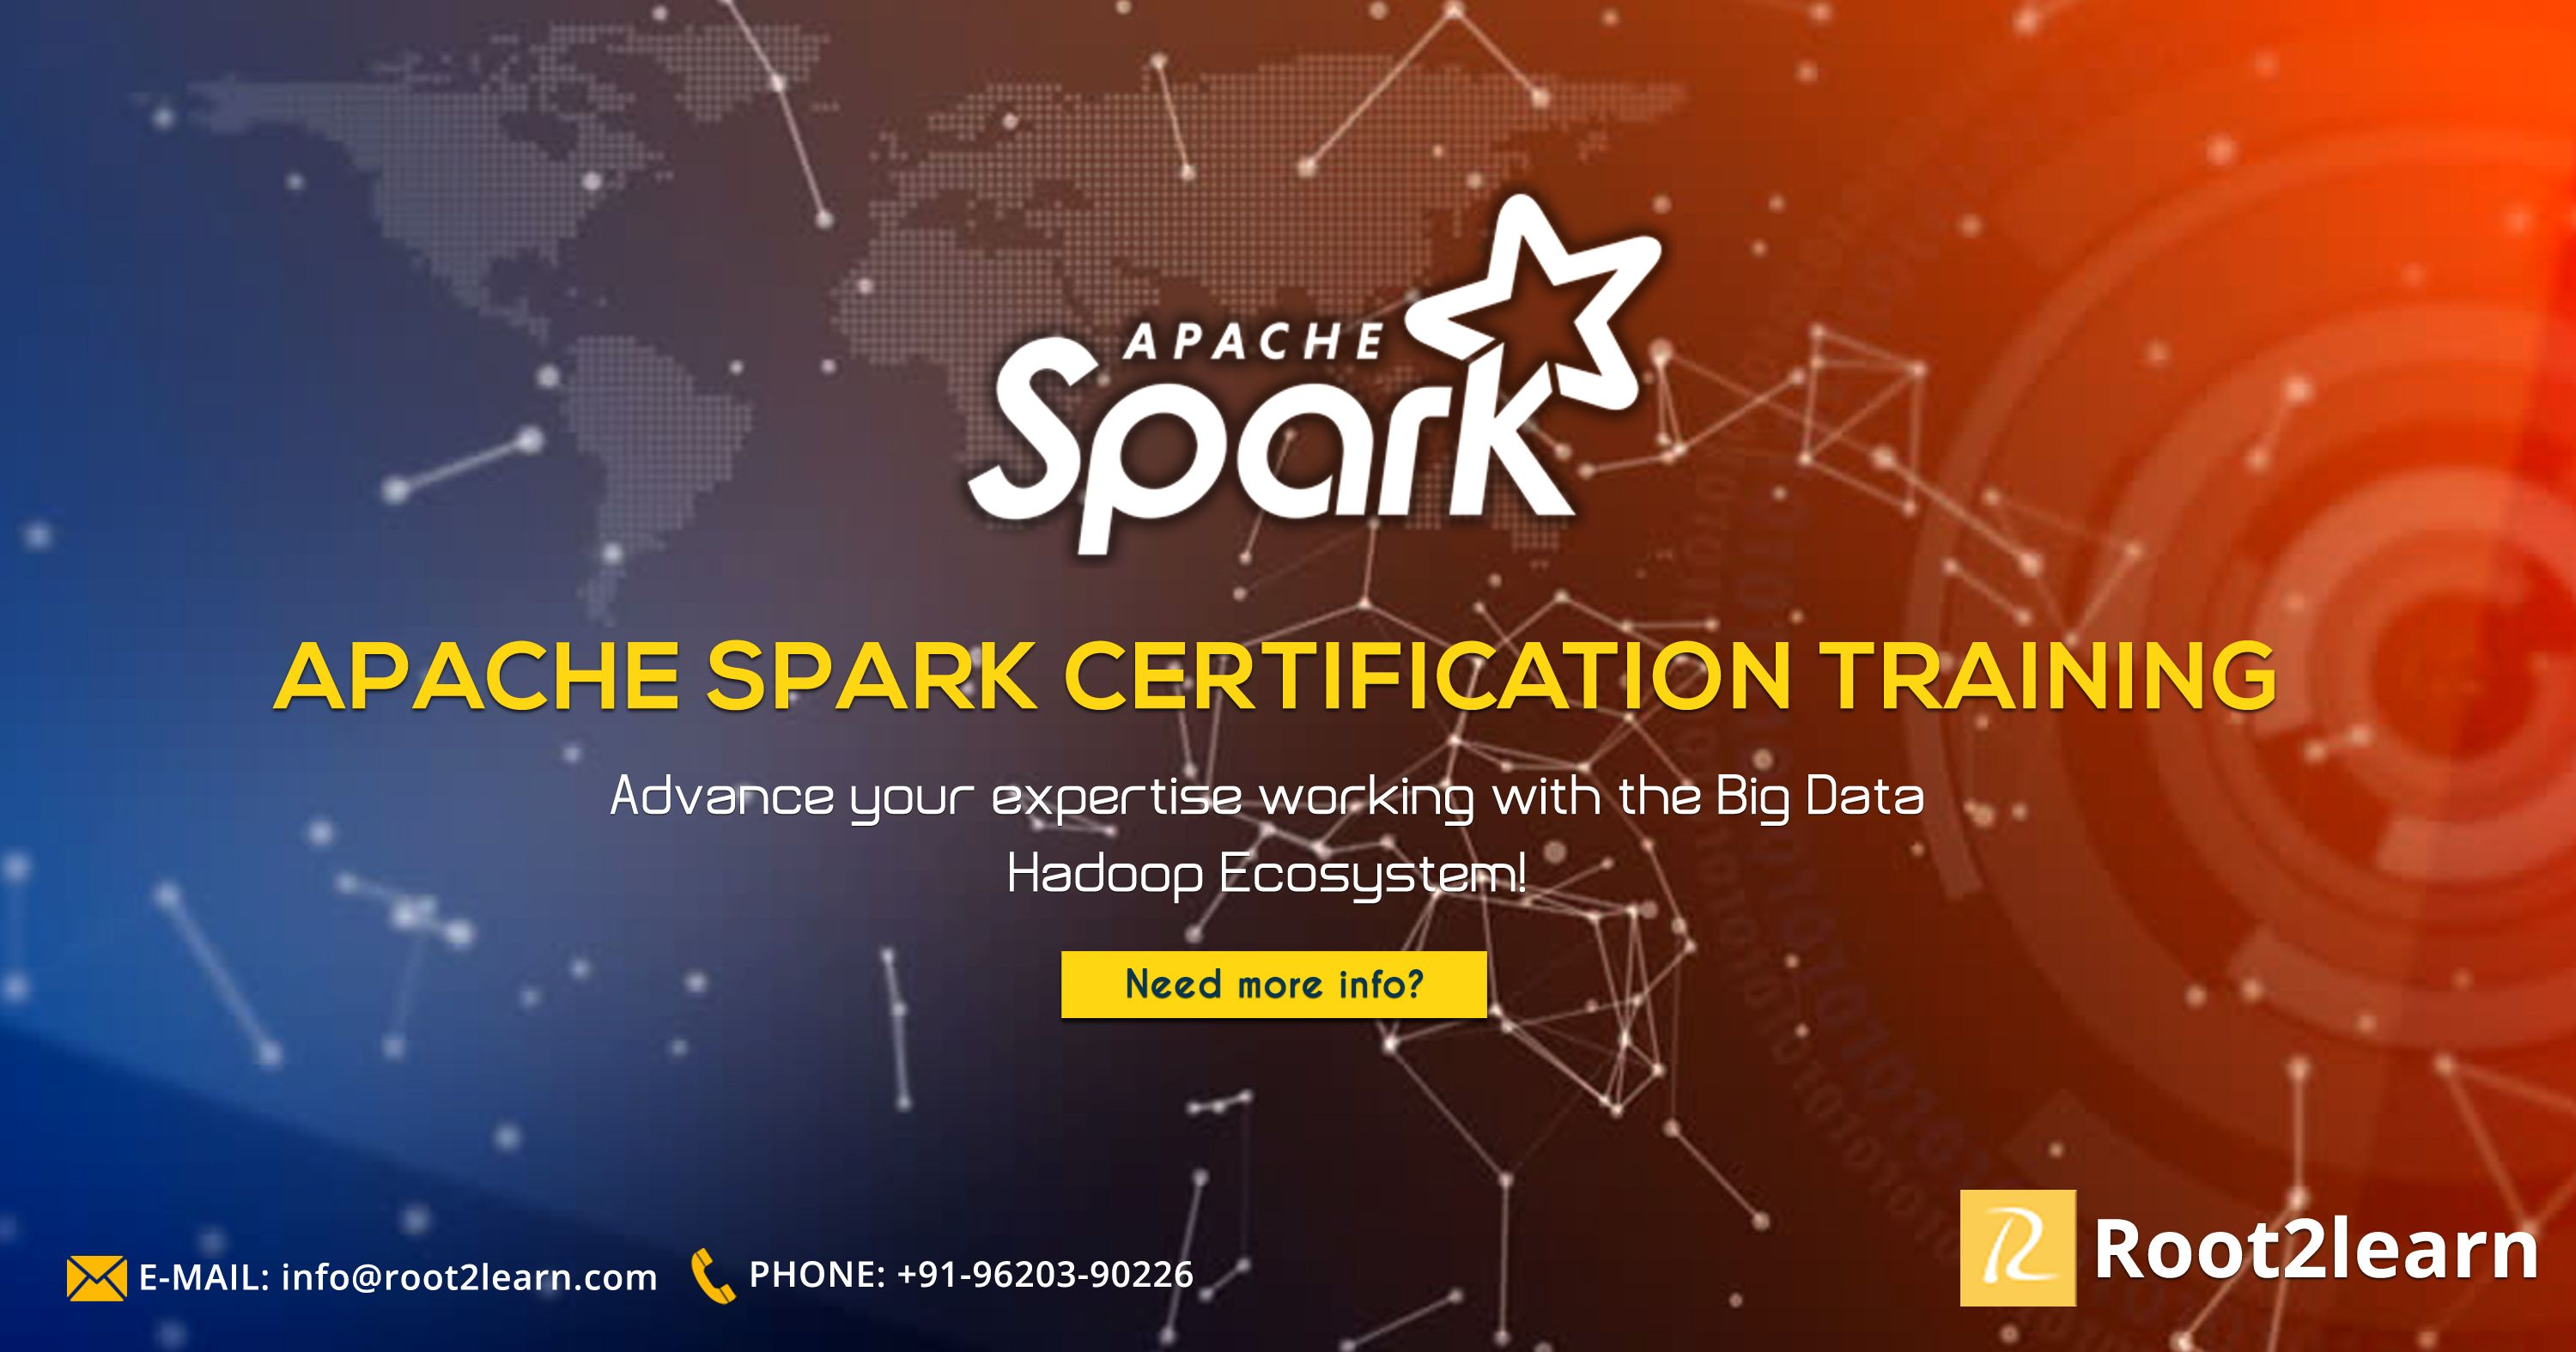 Apache Spark Certification Training This Apache Spark And